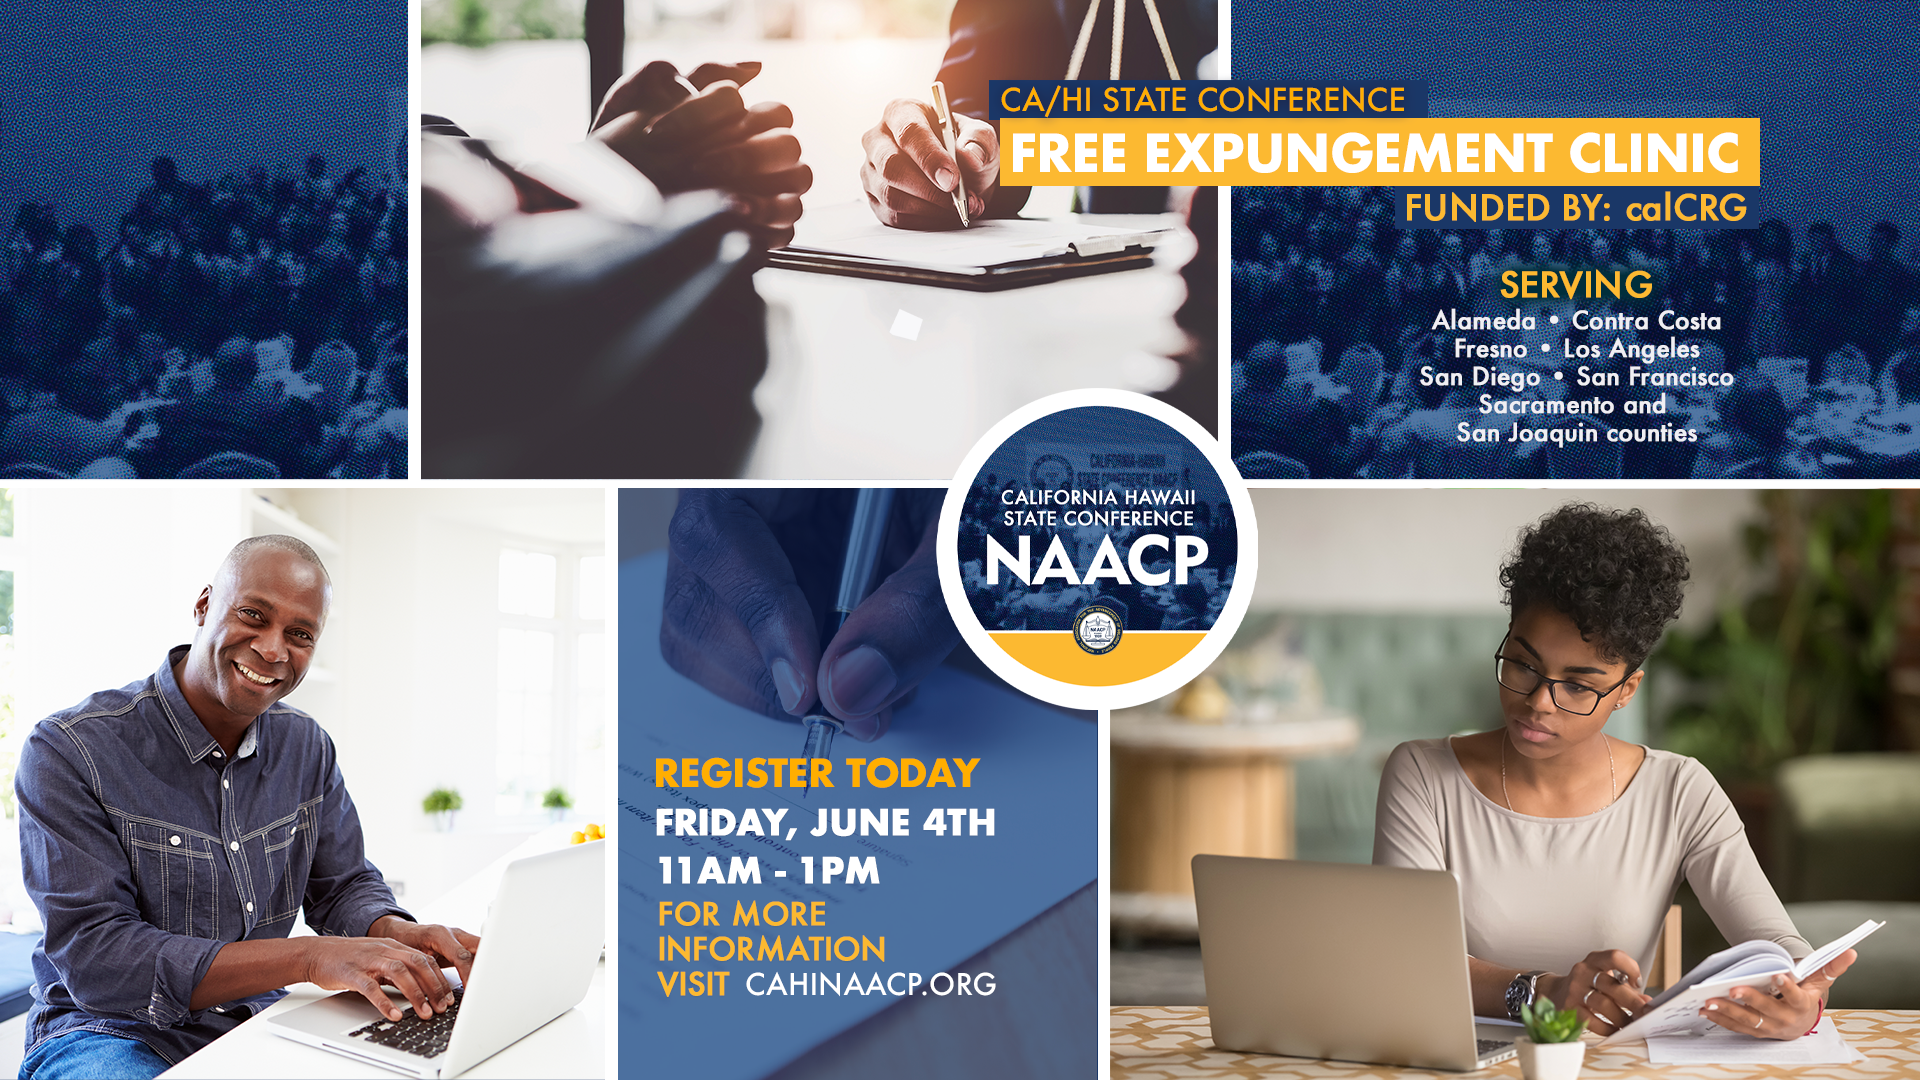 California NAACP Expungement Clinic